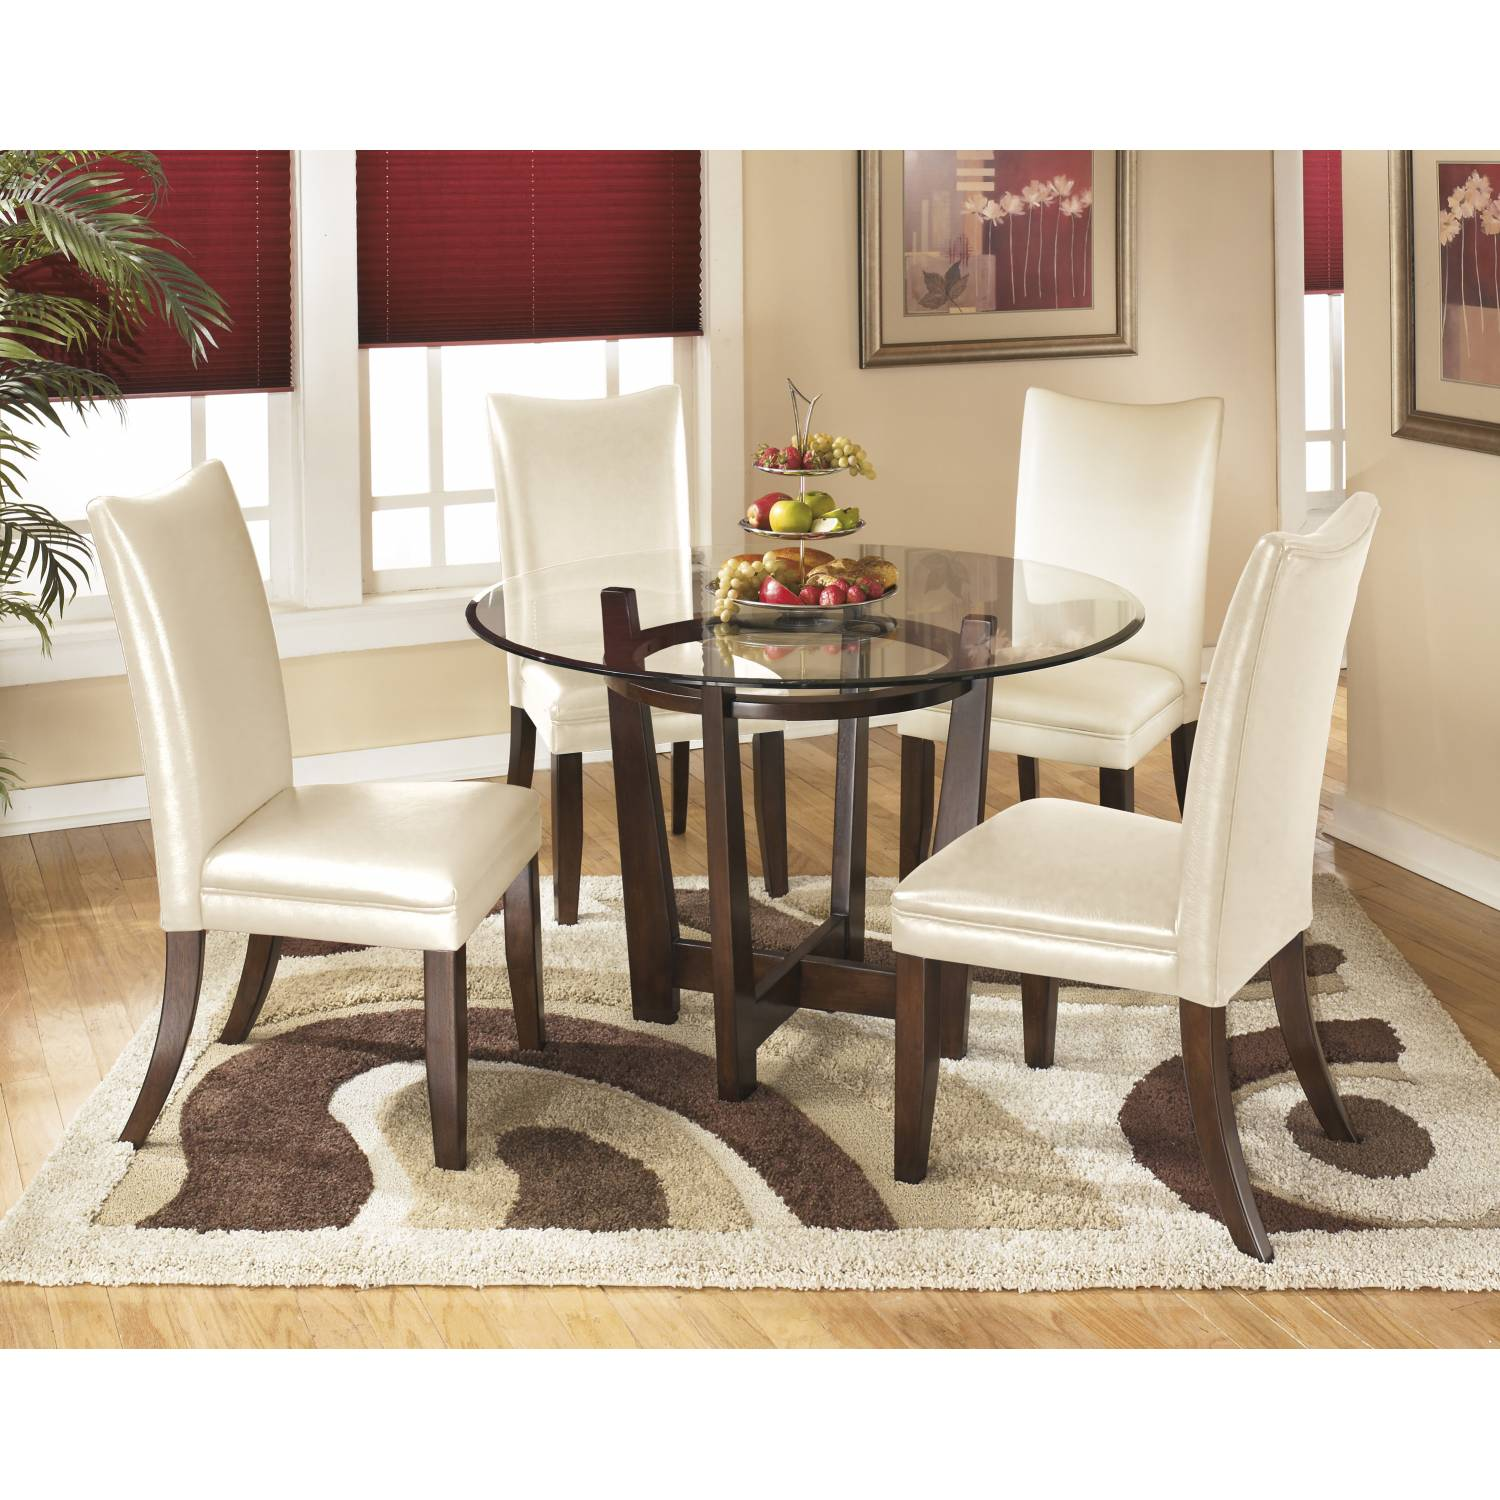 Charrell Dining Table And 4 Chairs, Charrell Dining Room Chair